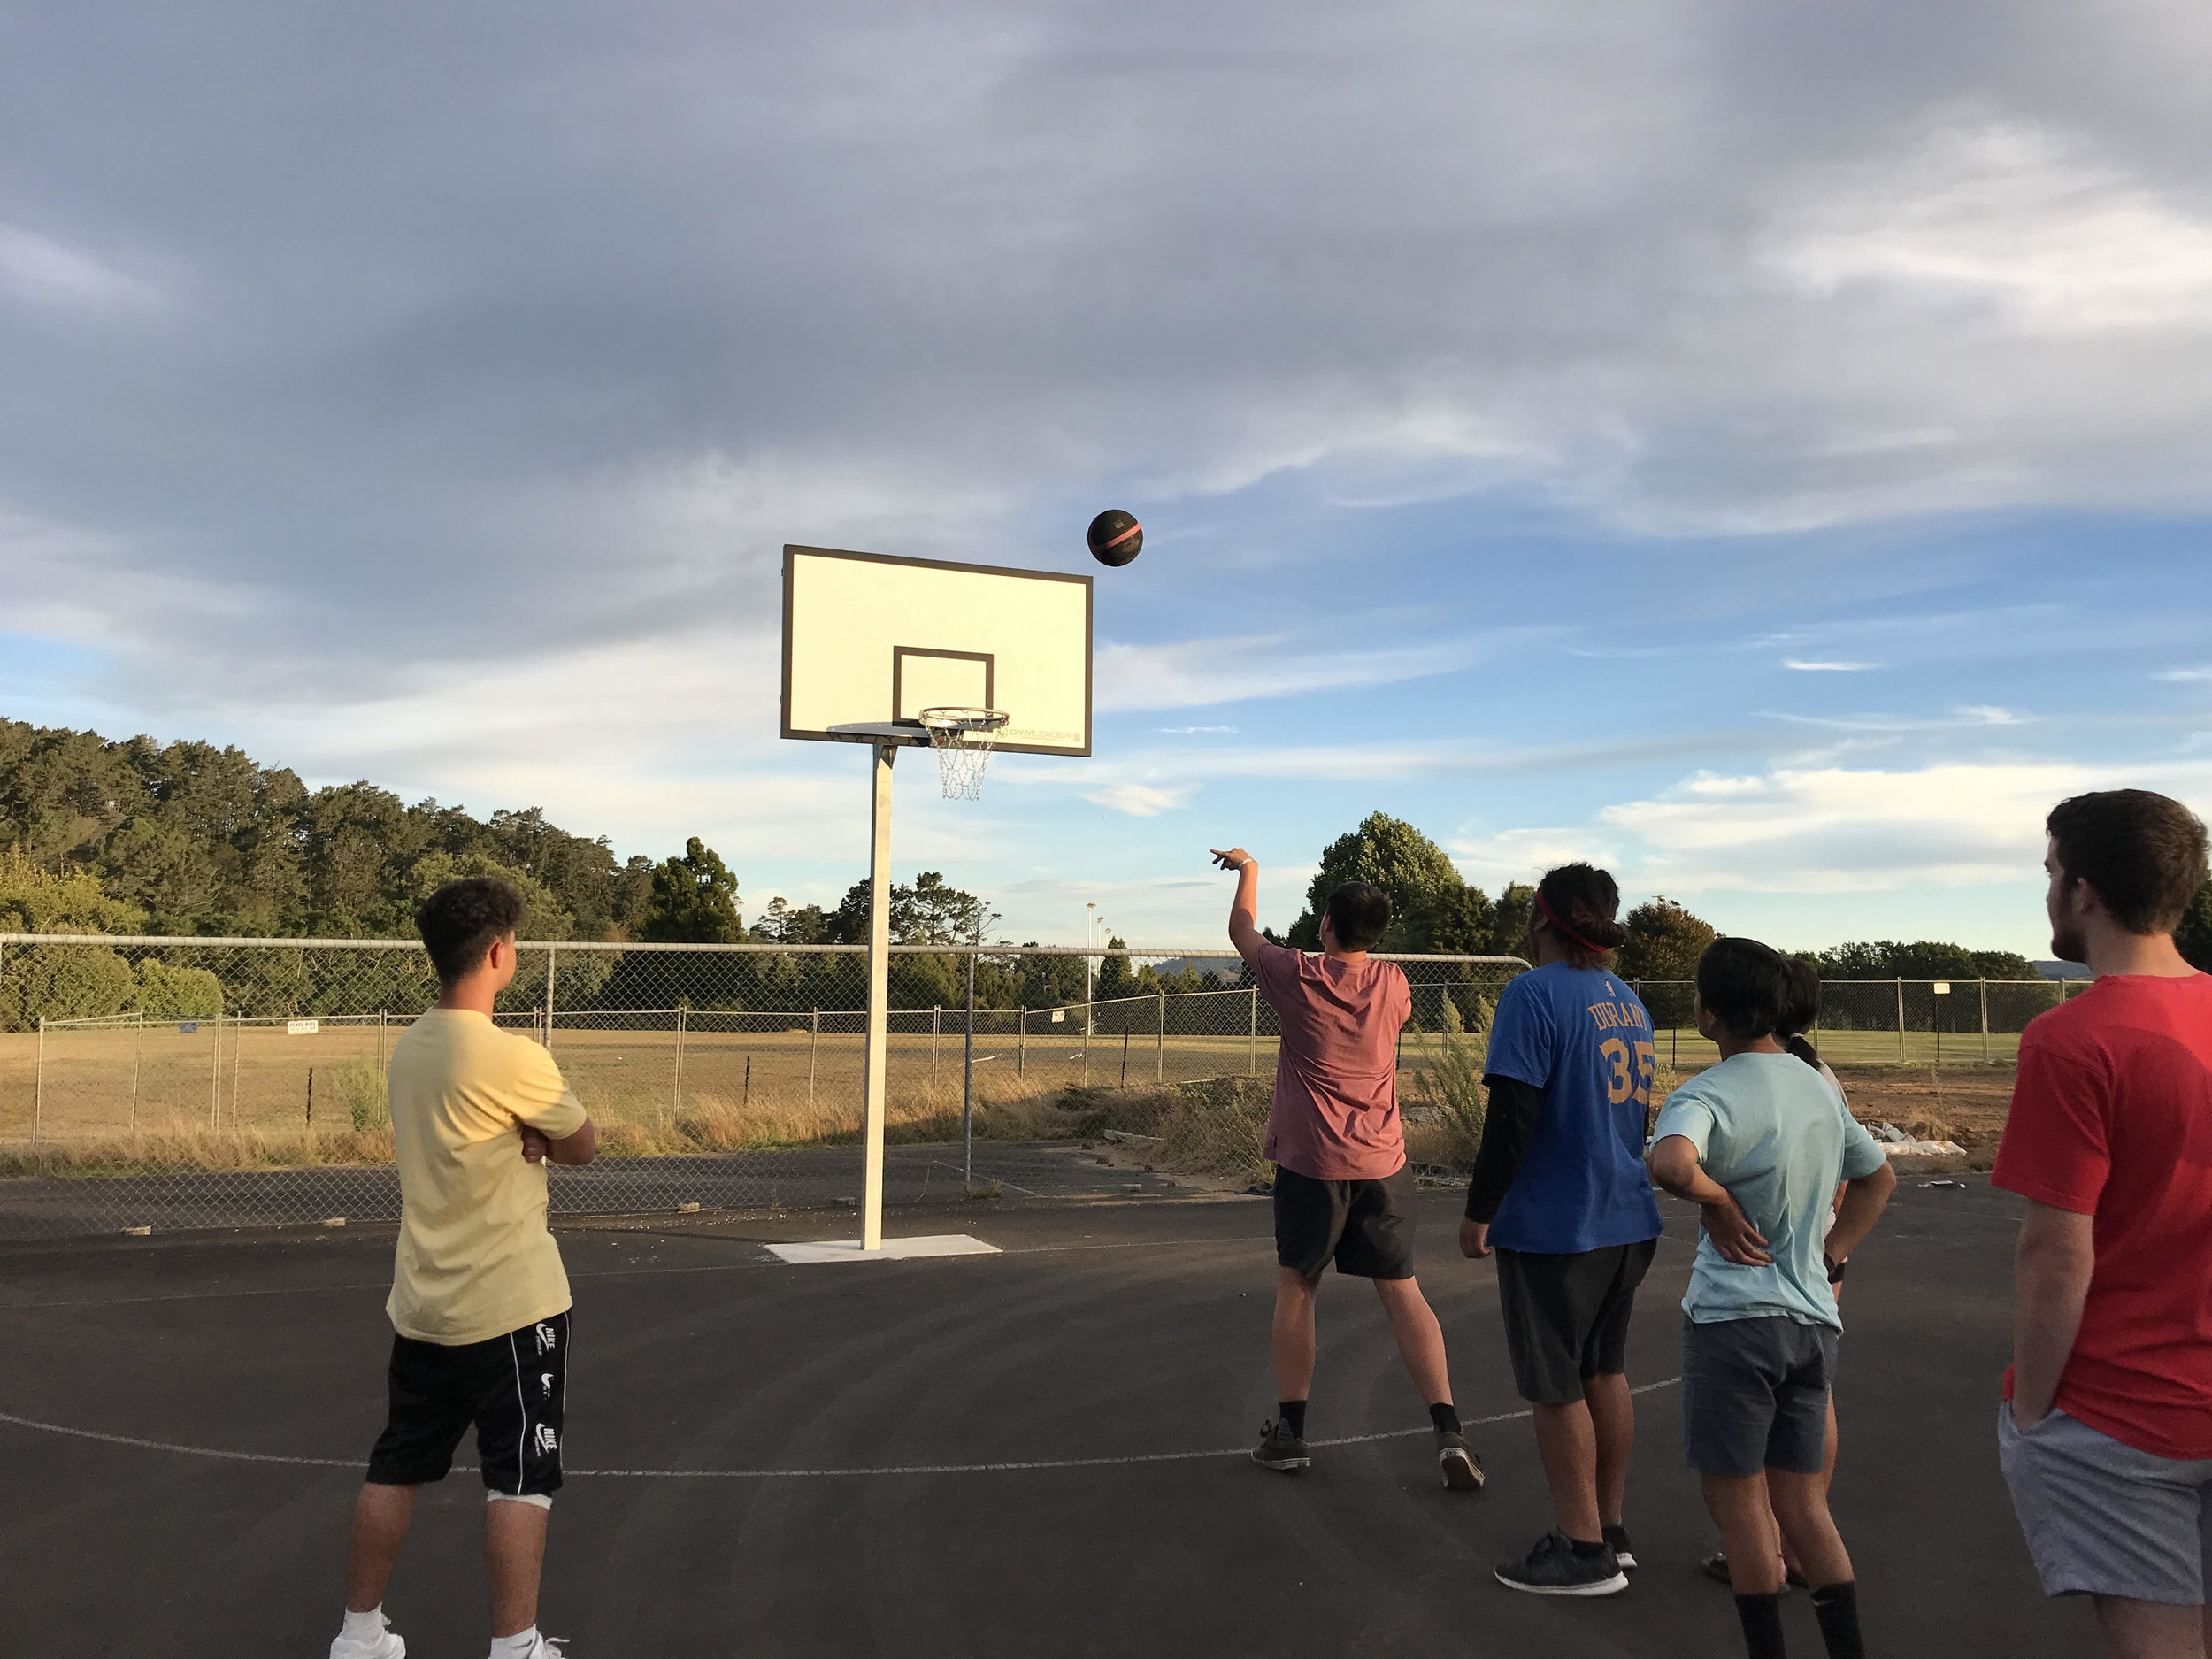 Basketball Court - The Forum has been working with Sport 'n' Action at Morgan Park to turn the old and stable netball courts into a new and exciting 3X3 Basketball courts - check out our Streets Ahead page for more details!